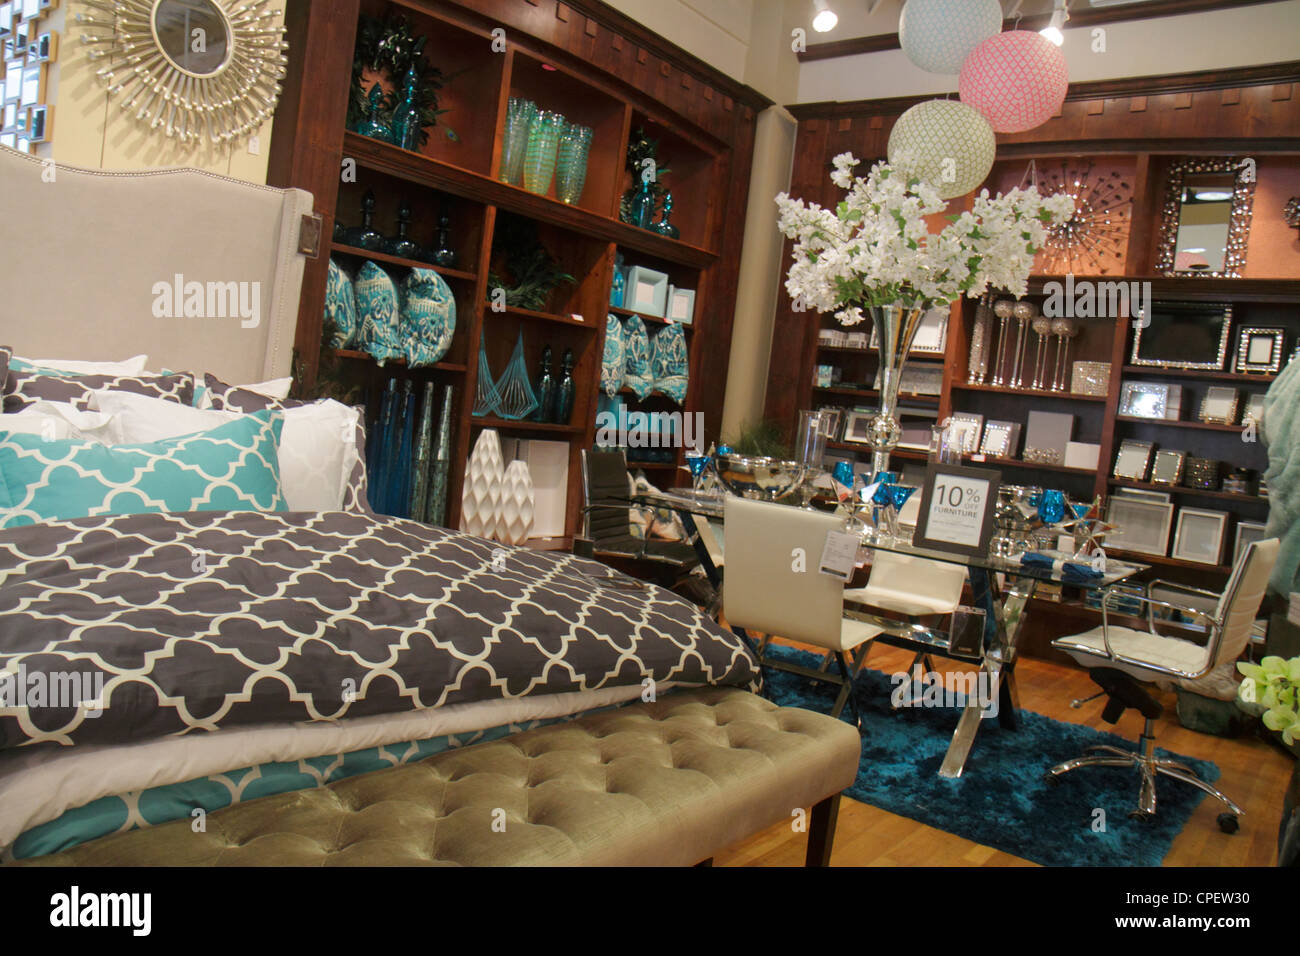 home decor stores boca raton turkce sikis izle dizi autos post 12439